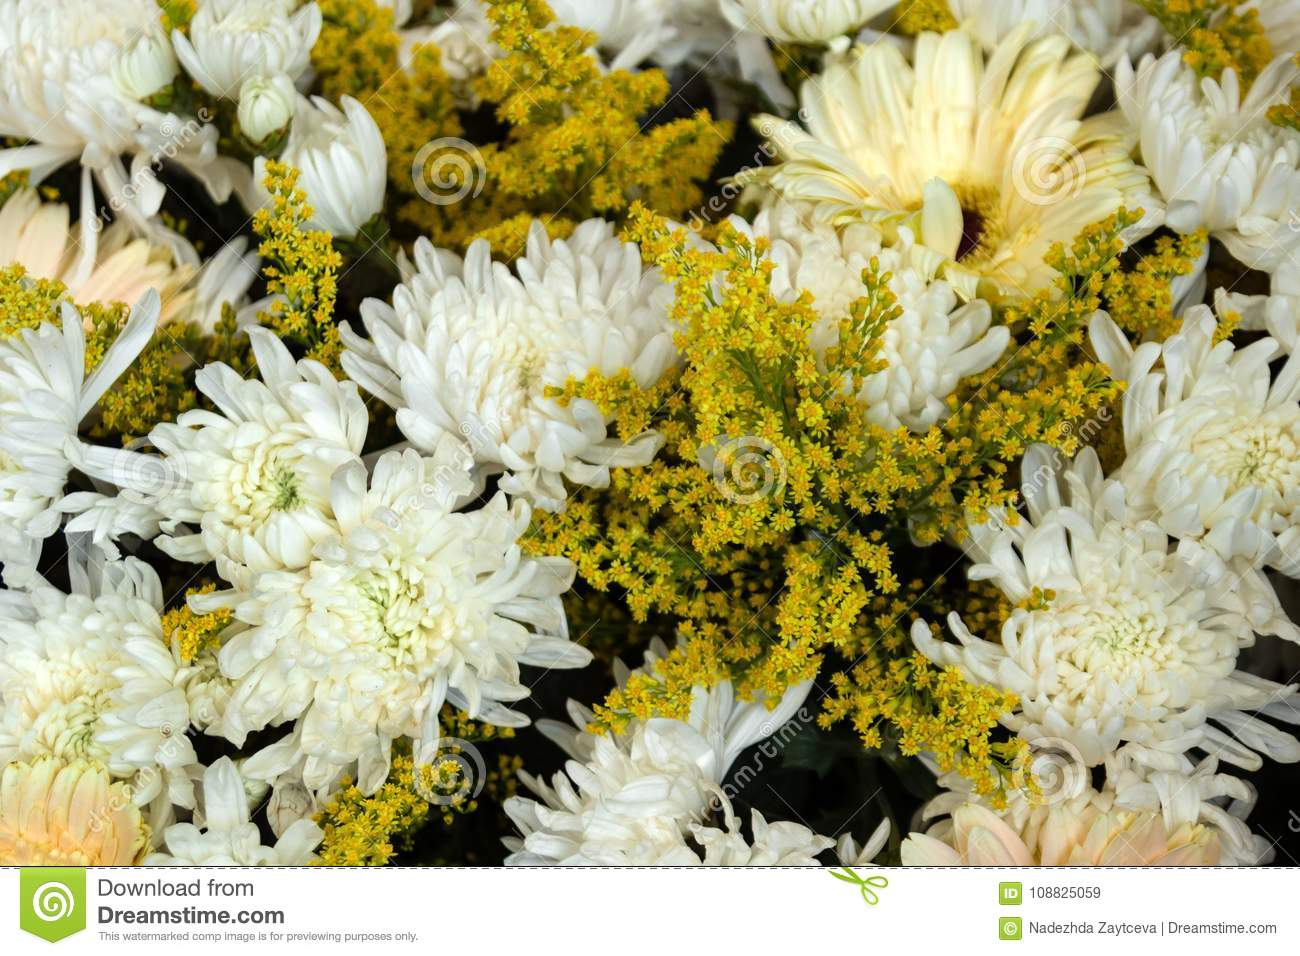 White Chrysanthemums And Yellow Flowers Of Mimosa In The Bouquets At